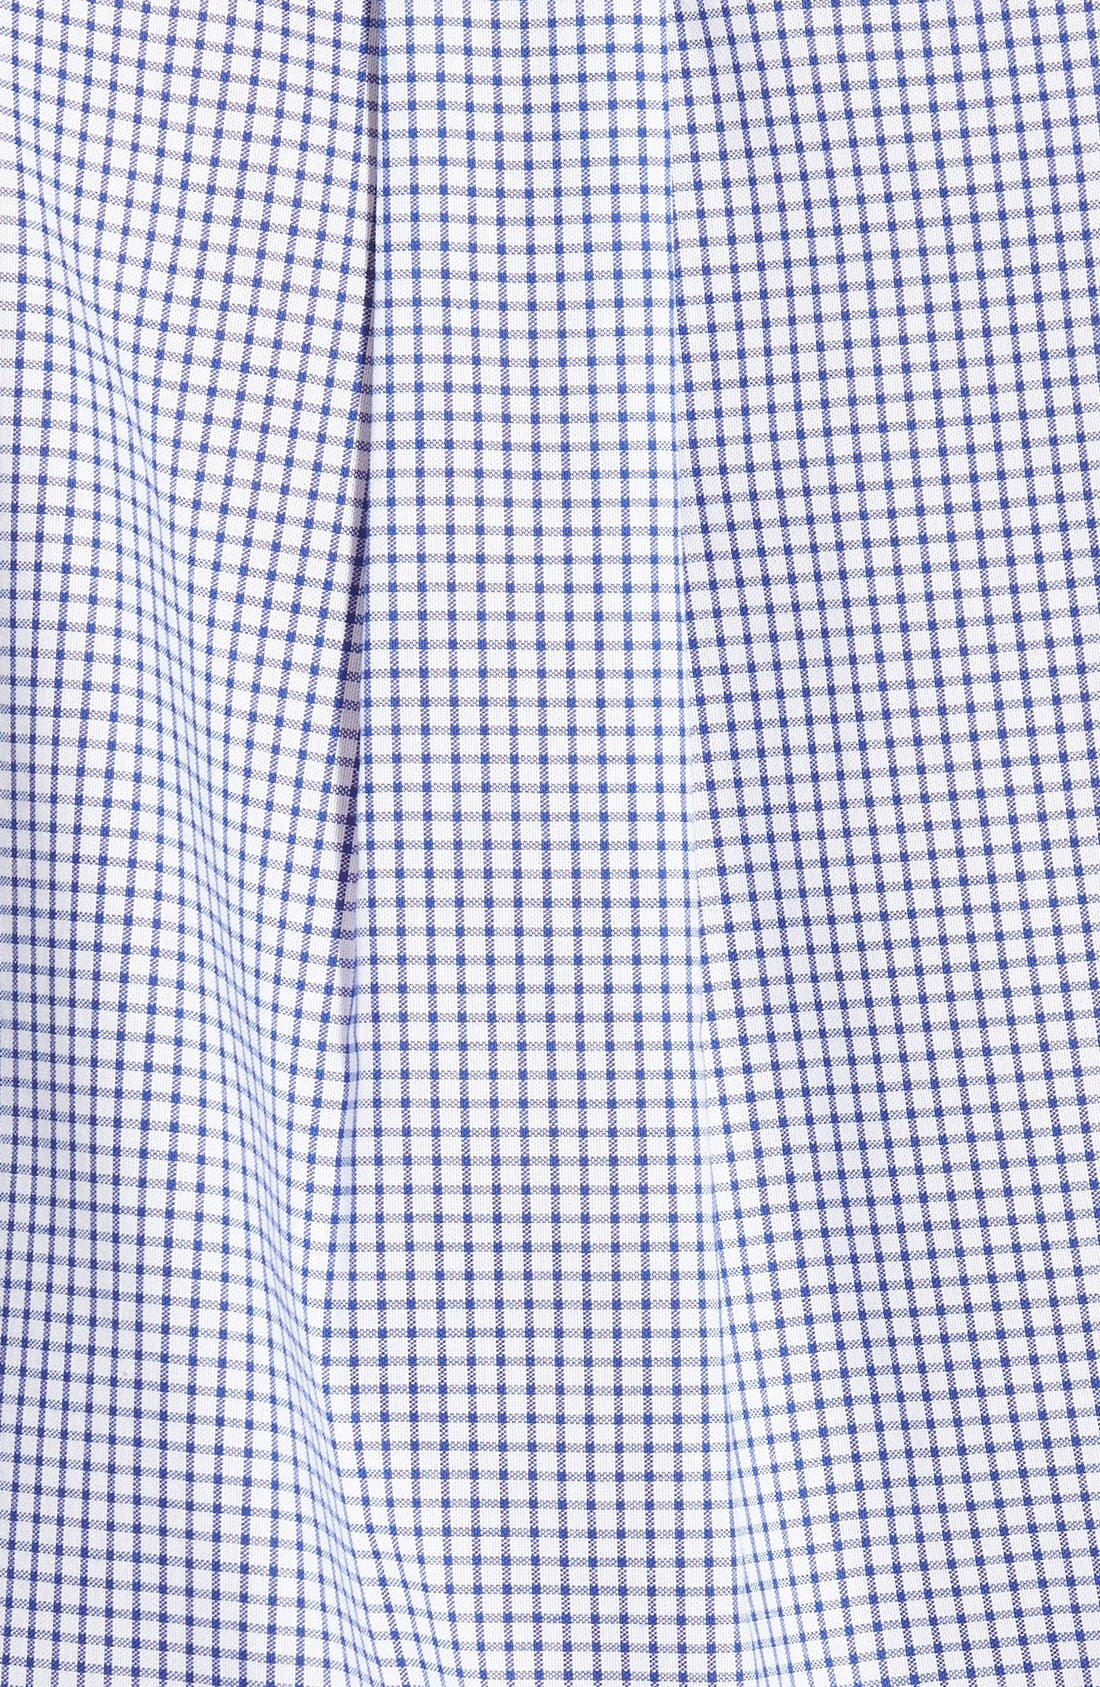 'Epic Easy Care' Classic Fit Wrinkle Free Tattersall Plaid Sport Shirt,                             Alternate thumbnail 2, color,                             French Blue